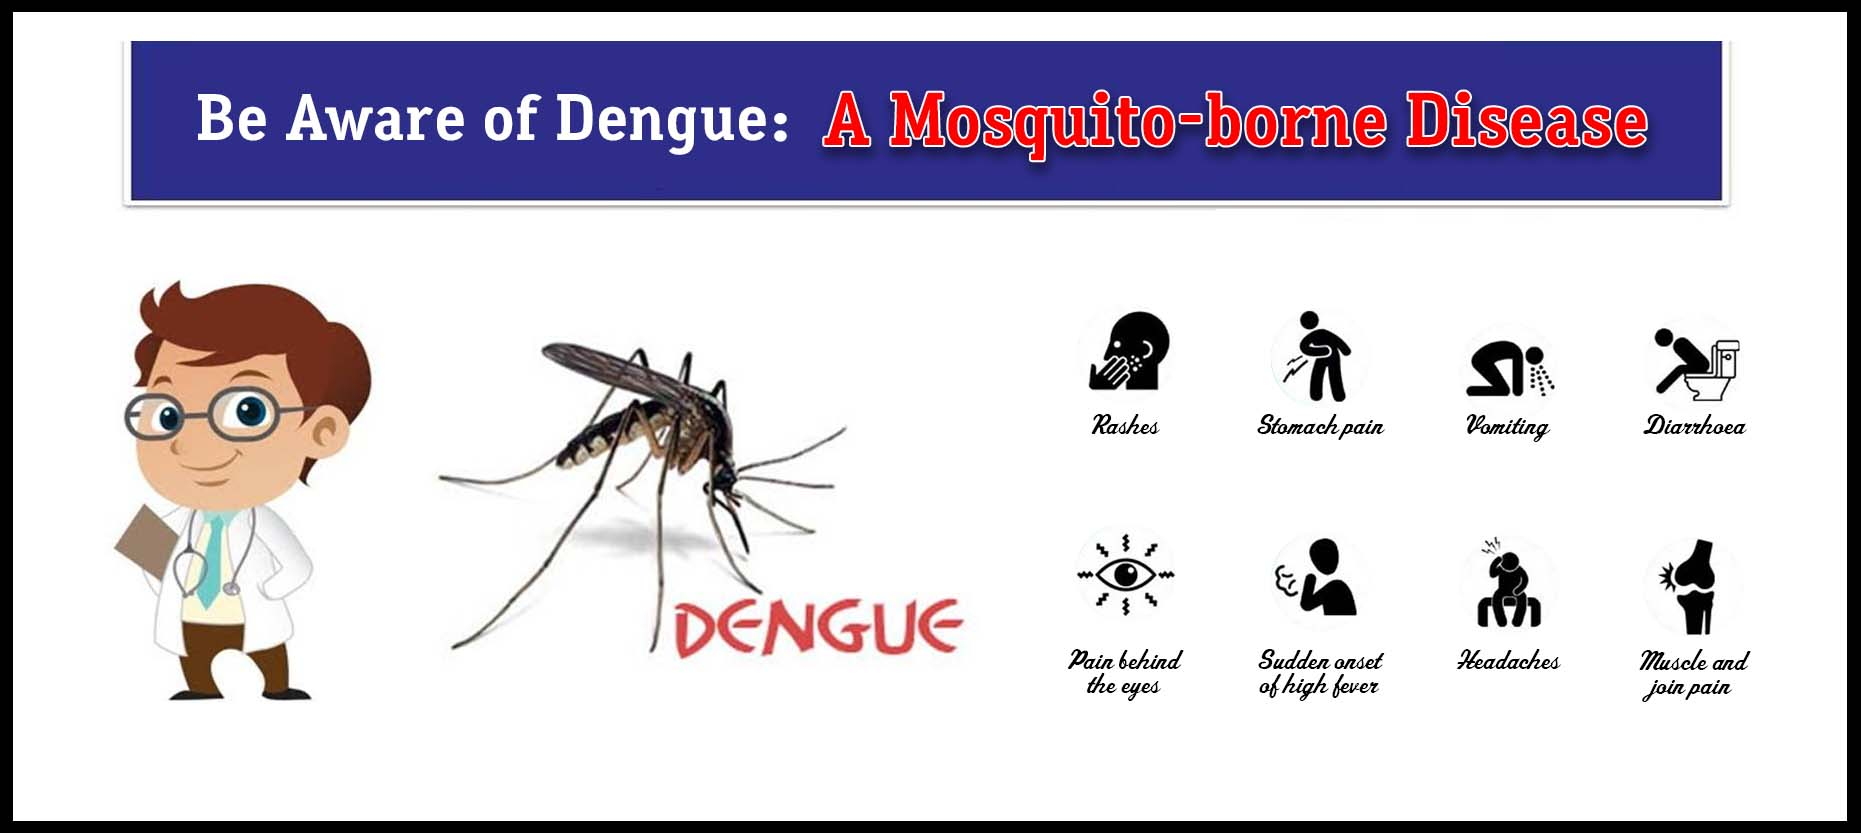 Be Aware of Dengue: A Mosquito-borne Disease